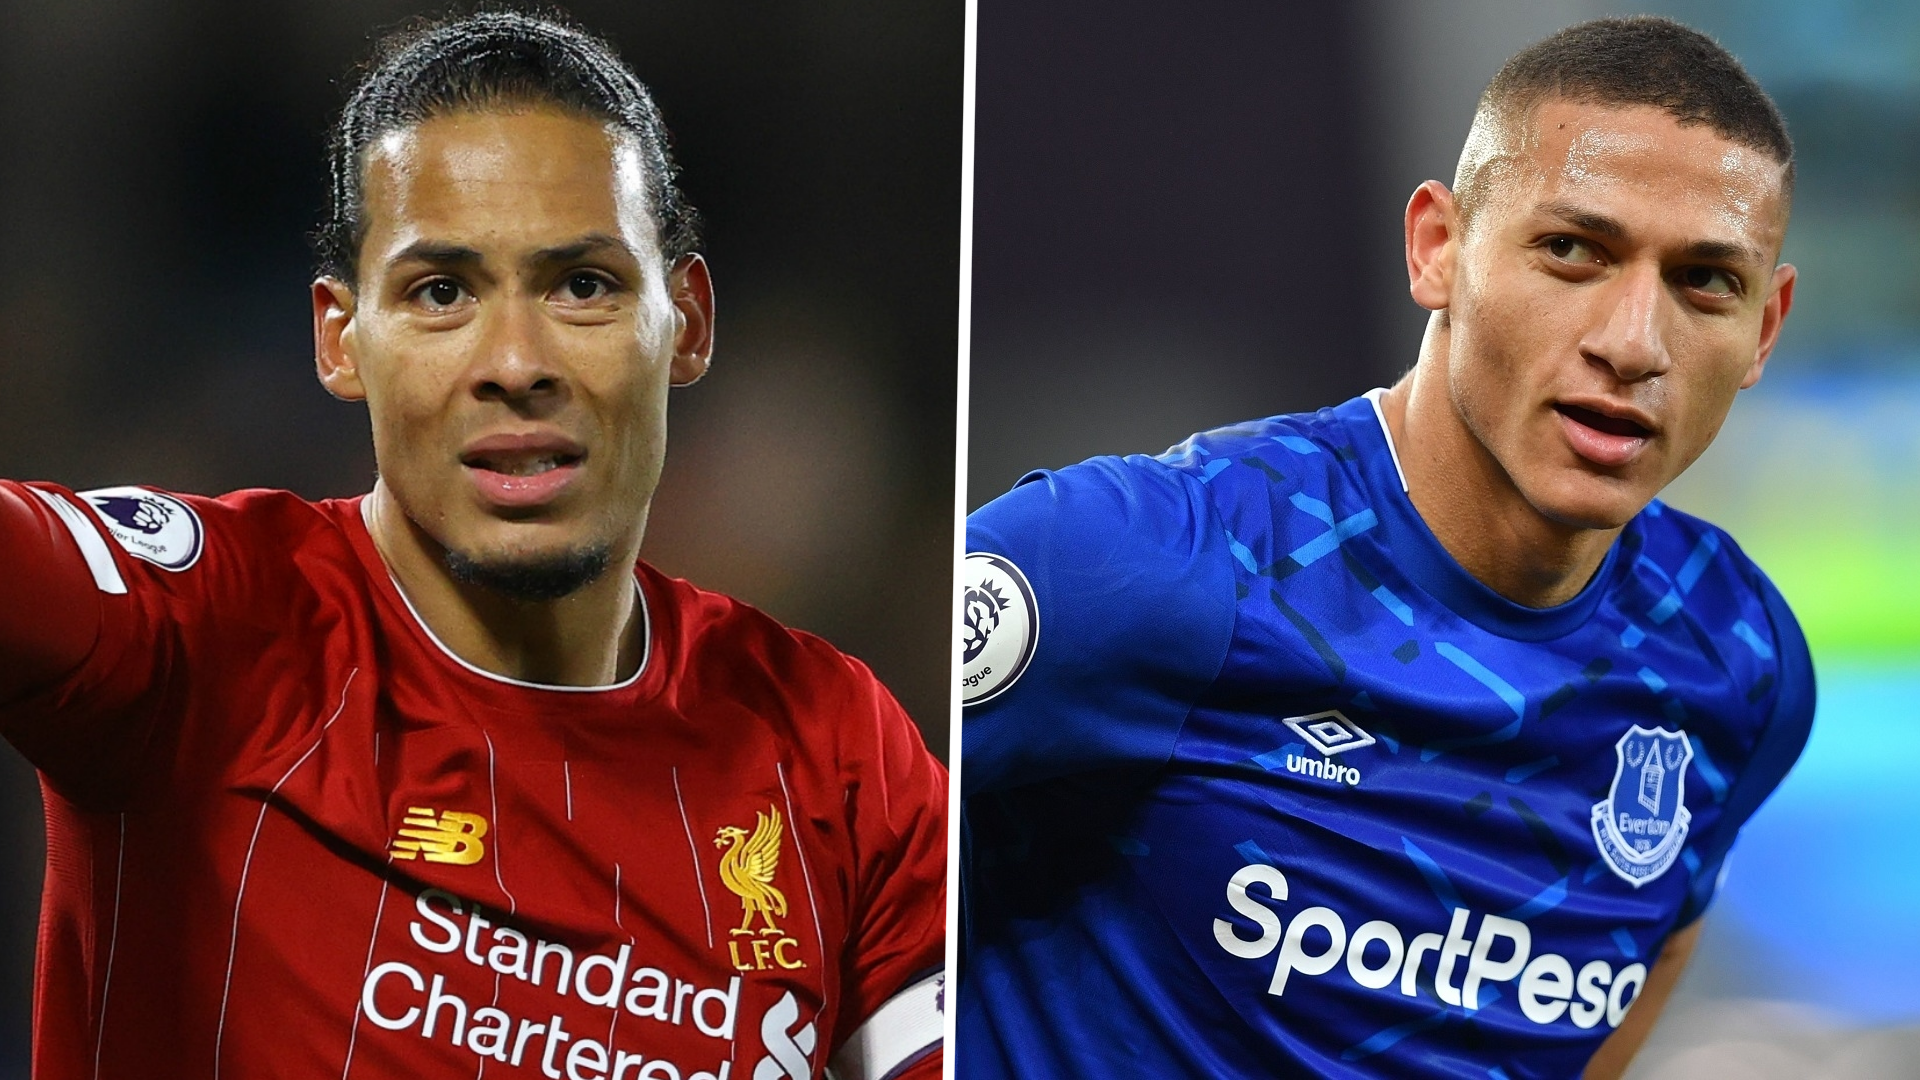 'There are better defenders' - Richarlison takes shot at Van Dijk ahead of Merseyside derby